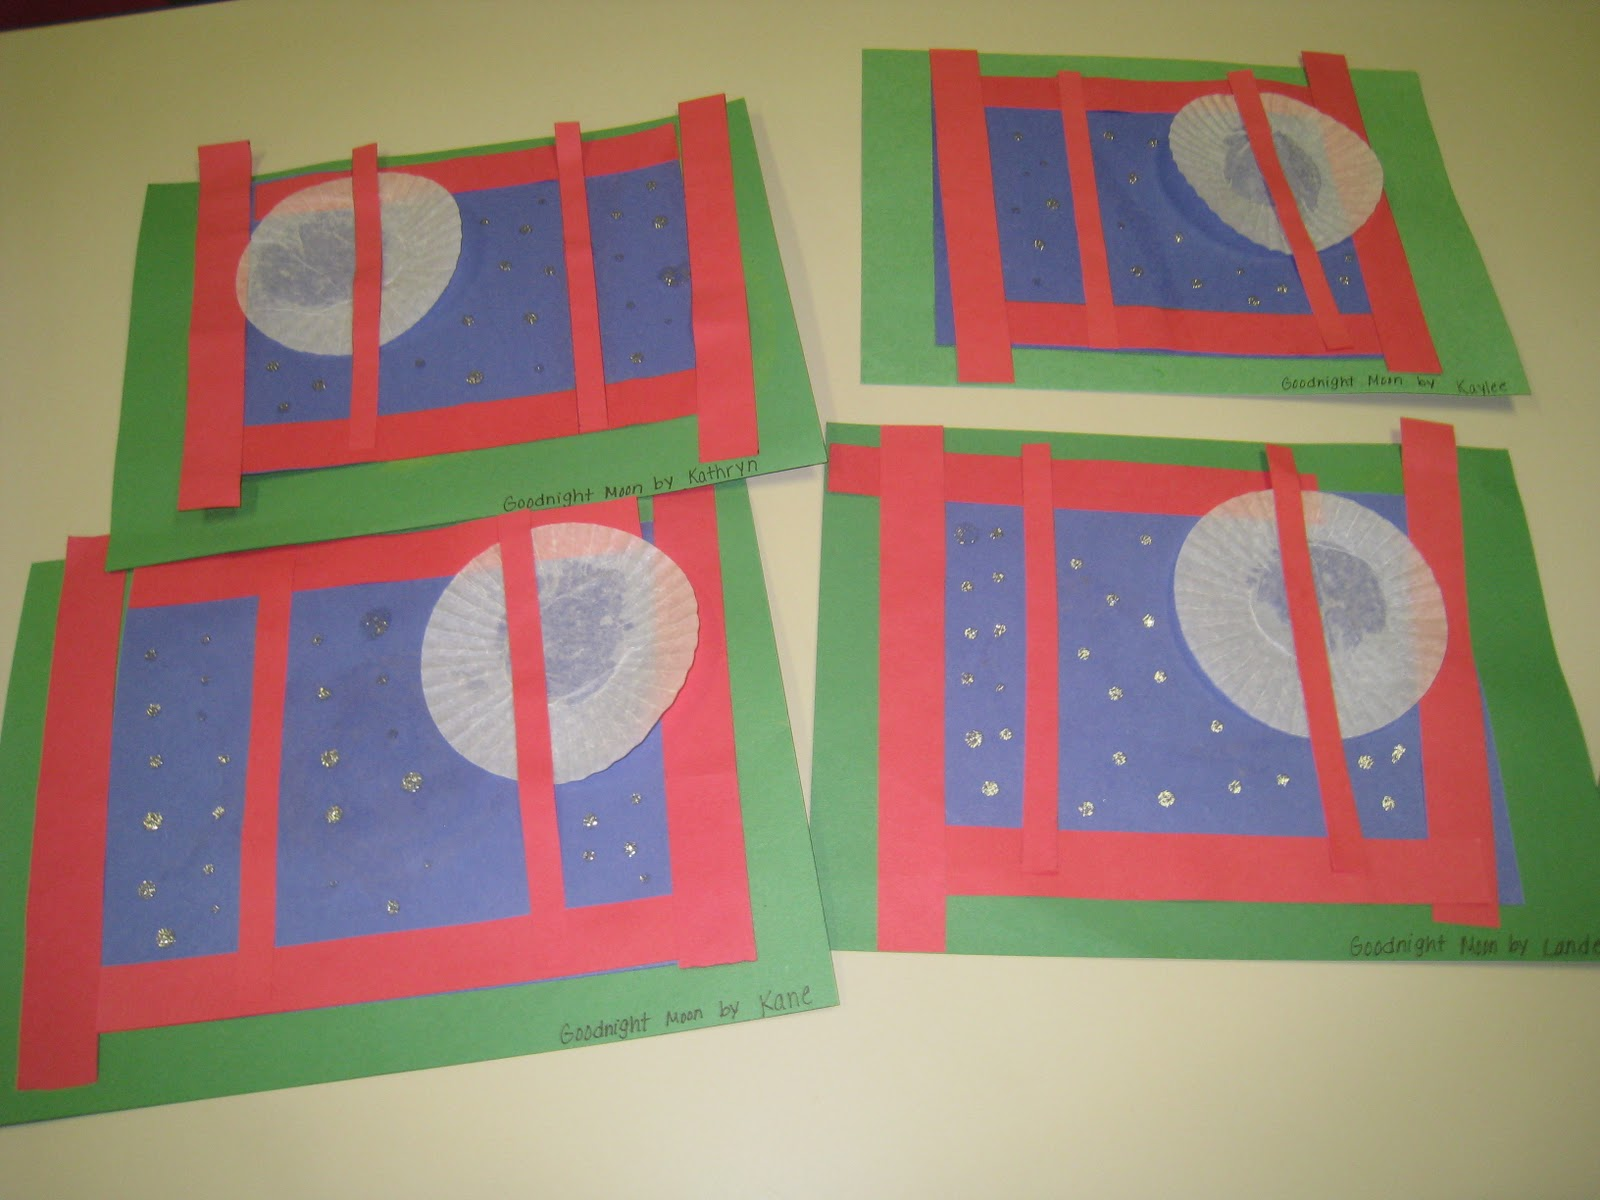 Mrs russell 39 s class goodnight moon and other moon ideas for Books with art projects